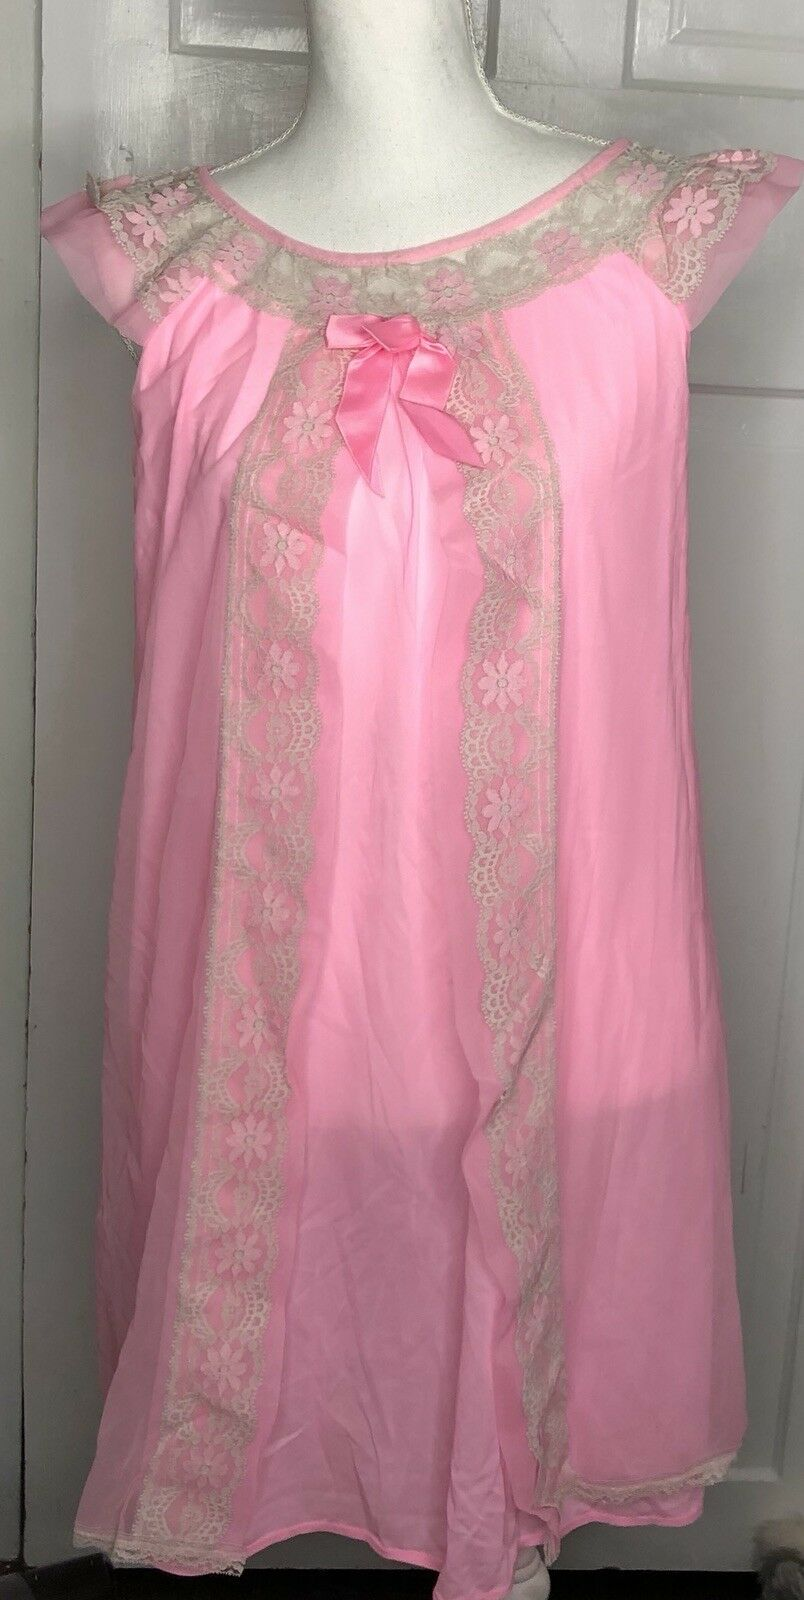 Medium VINTAGE NIGHT GOWN 1970's PINK NYLON Tulle NOS U.S.A. Open Front Lace